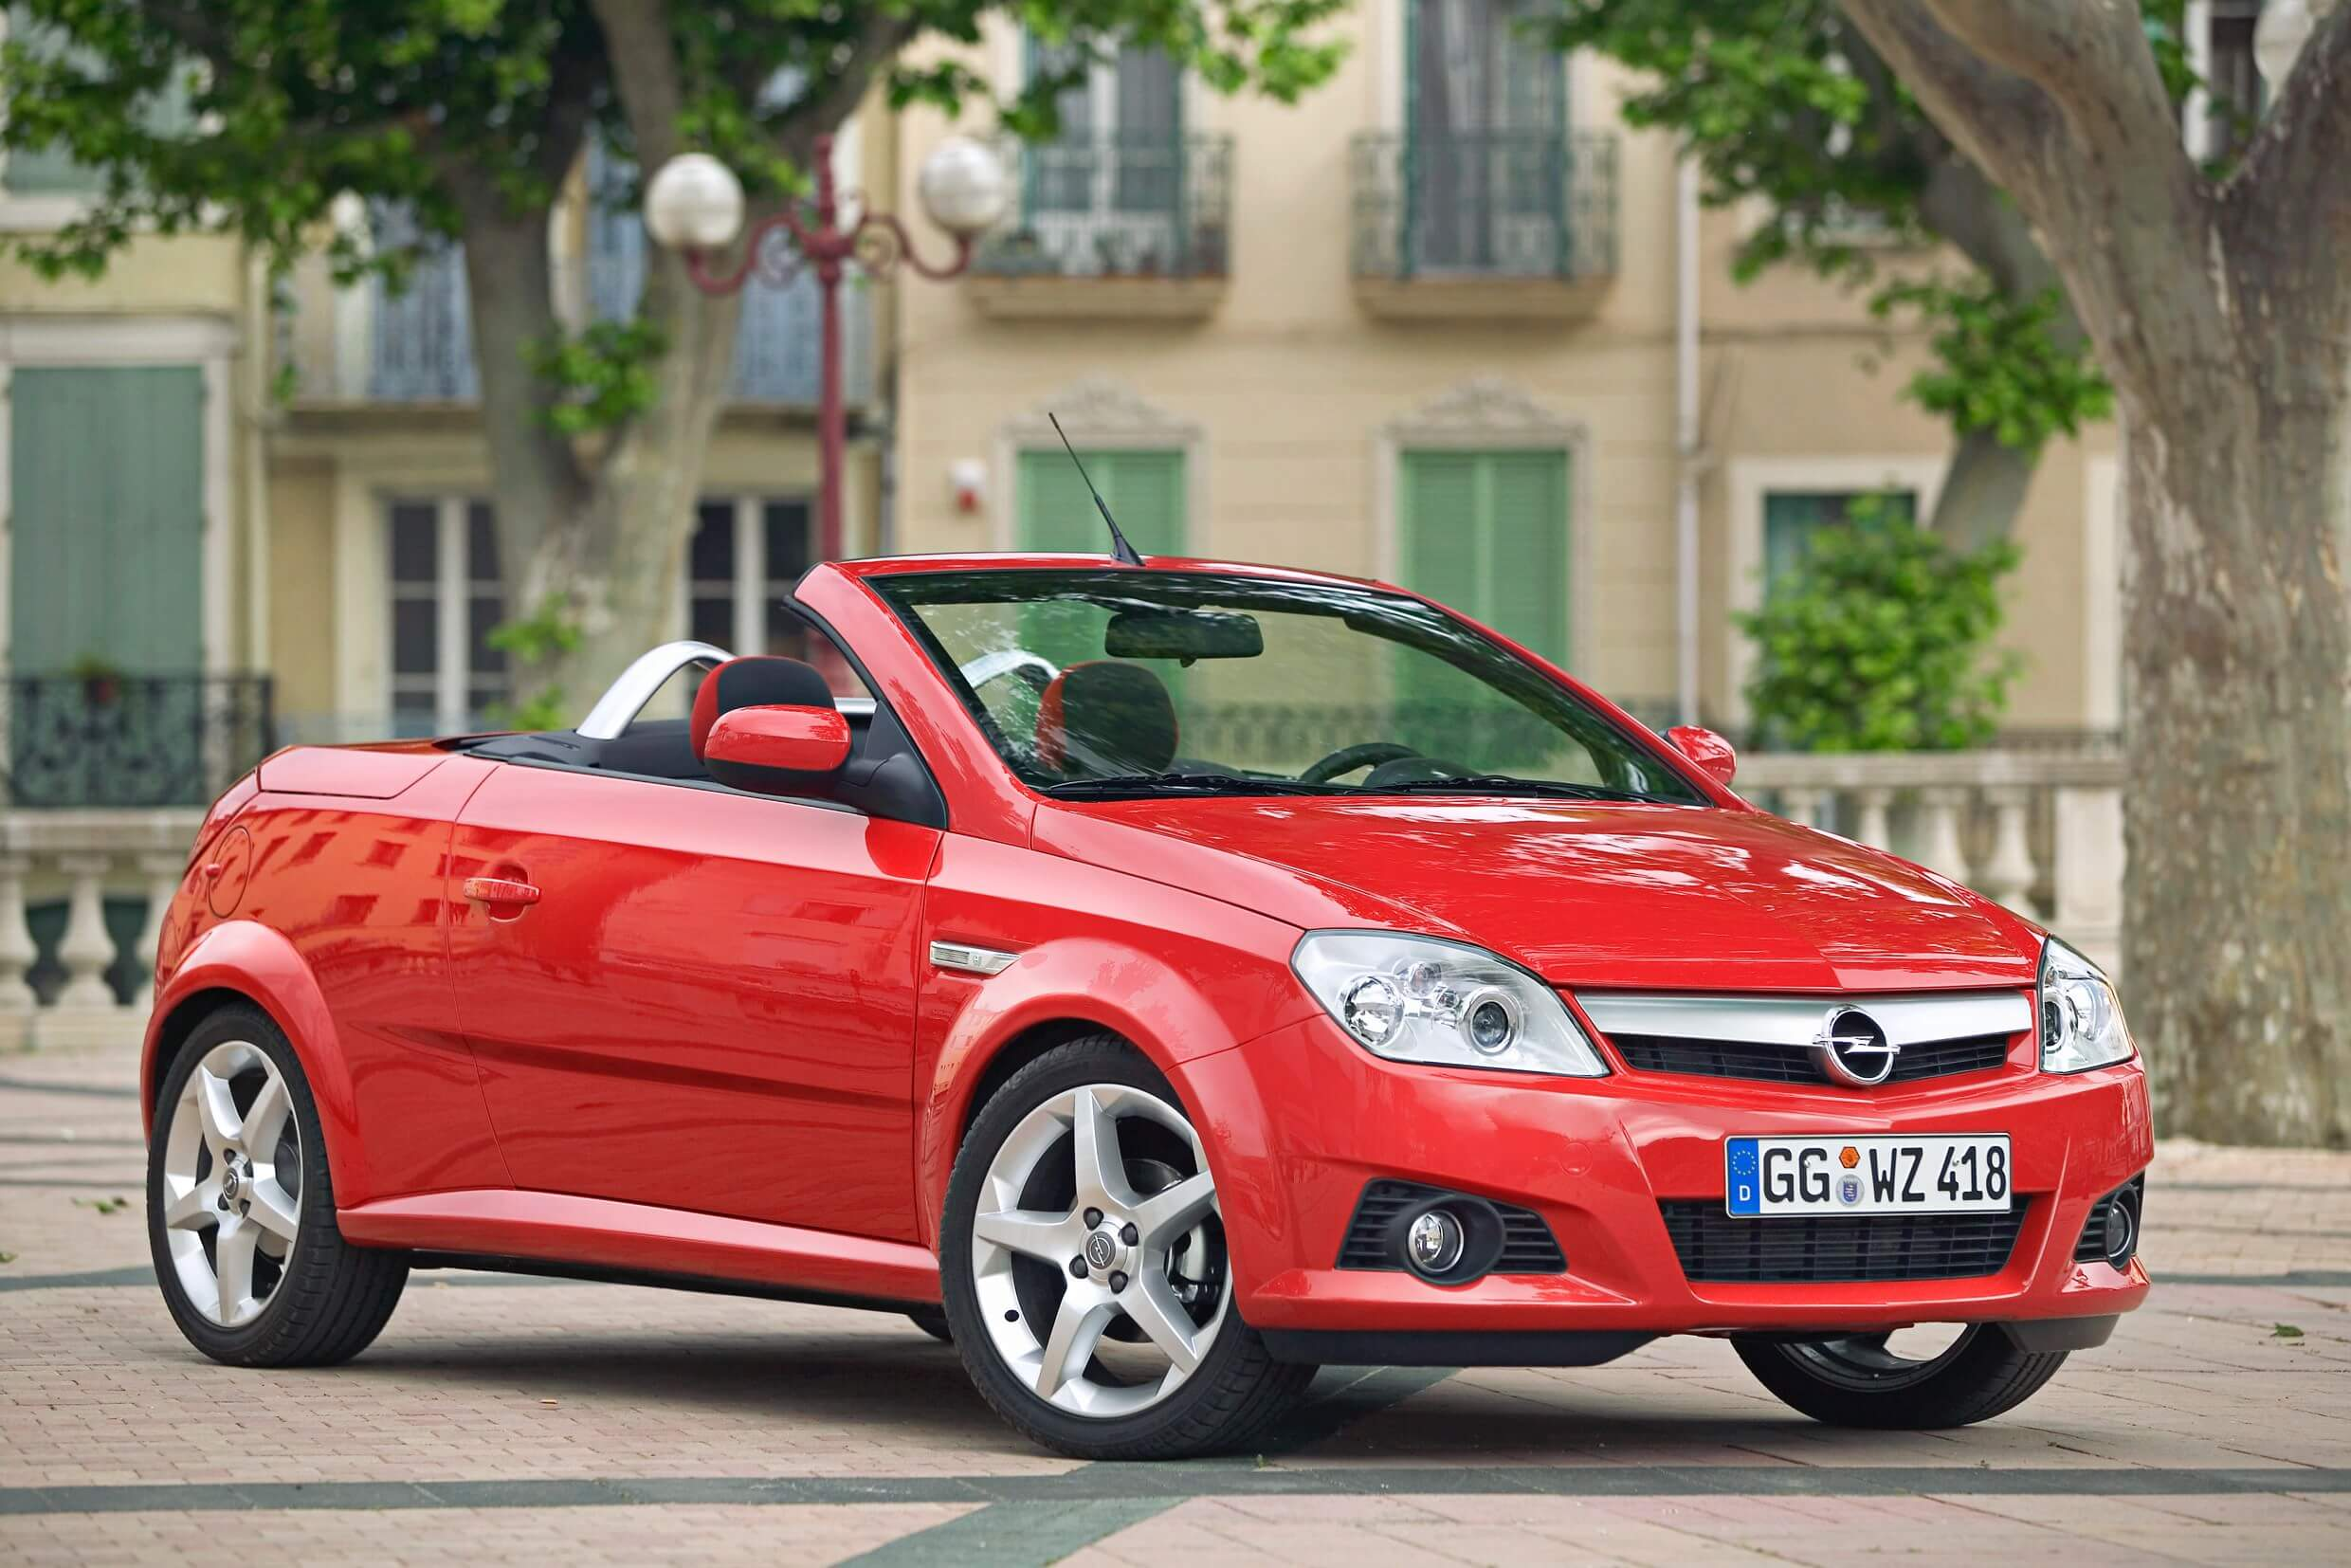 Opel Tigra 2004 - 2009 | Carzone Used Car Buying Guides